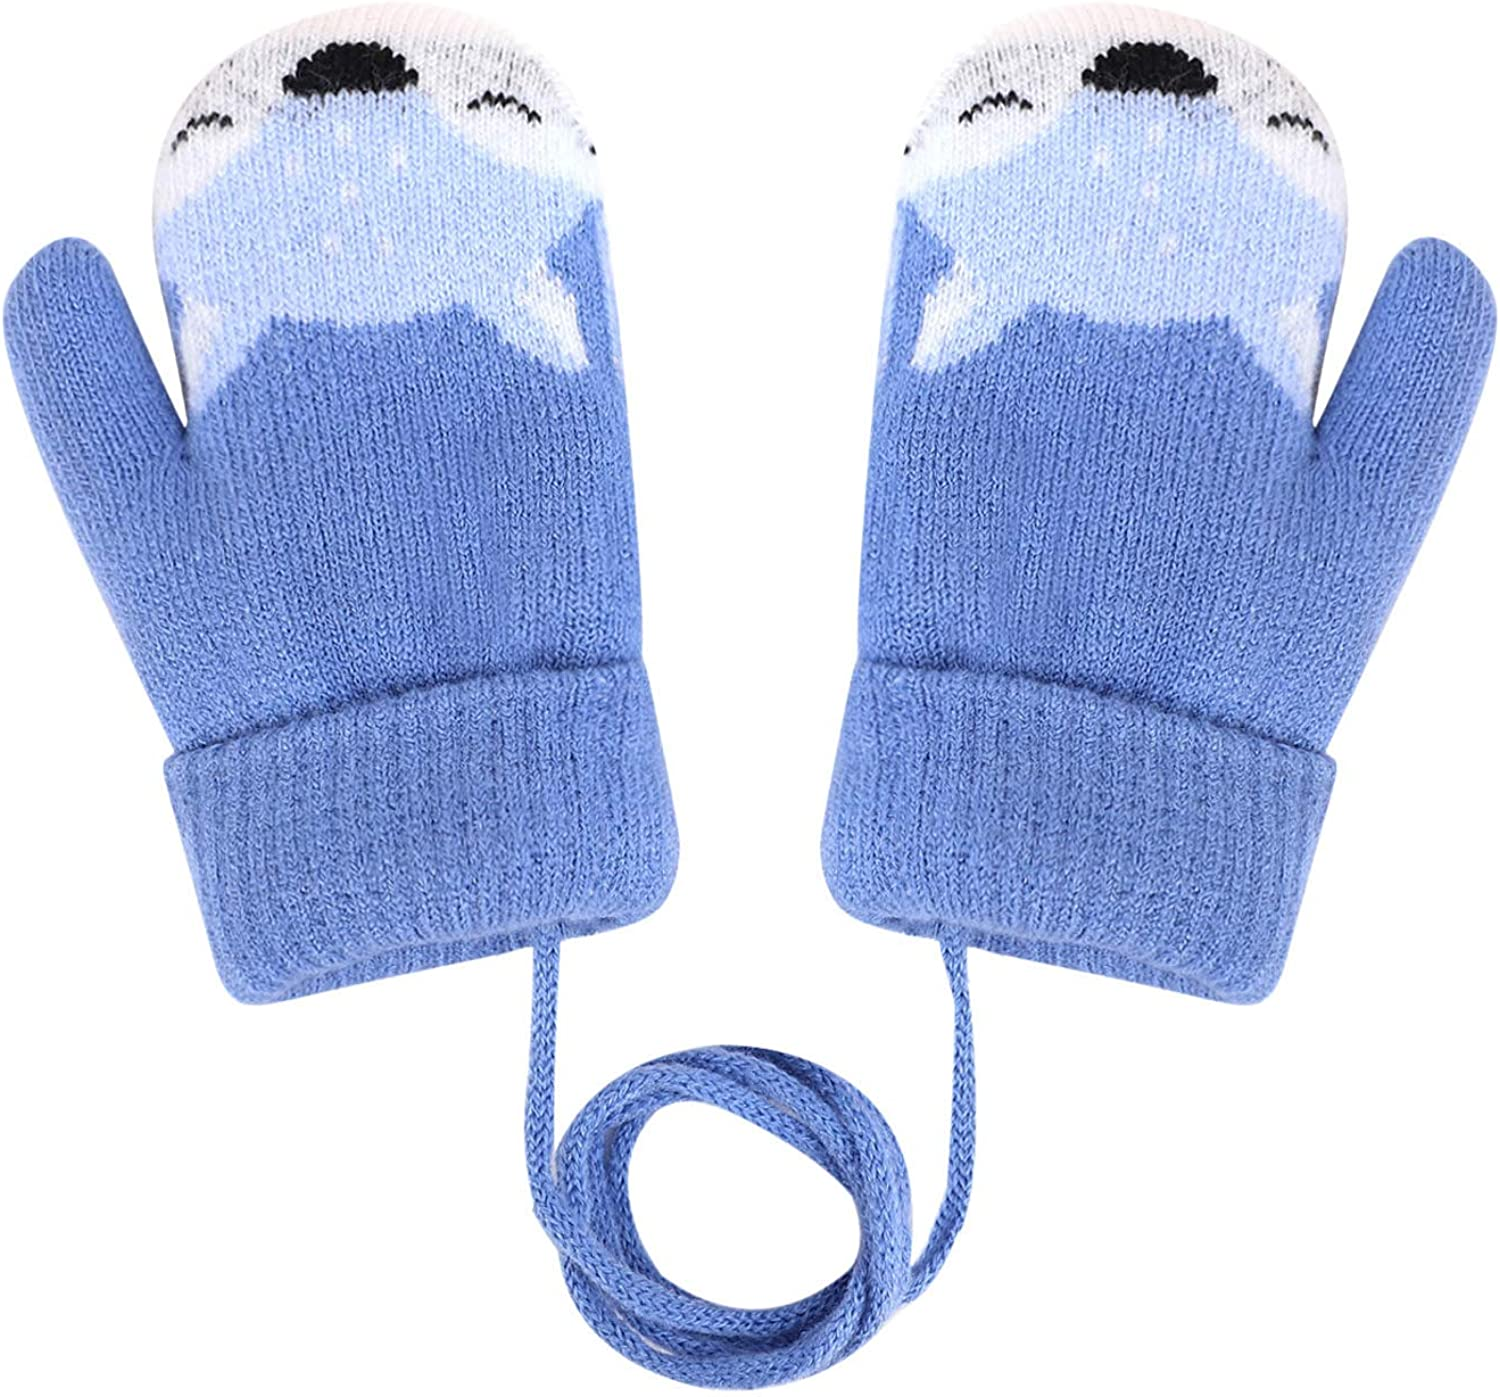 Kids Toddler Winter Warm Knitted Gloves Plush Lined Thicken Thermal Mittens with String Outdoor Hand Wear 0 to 4 Years Old